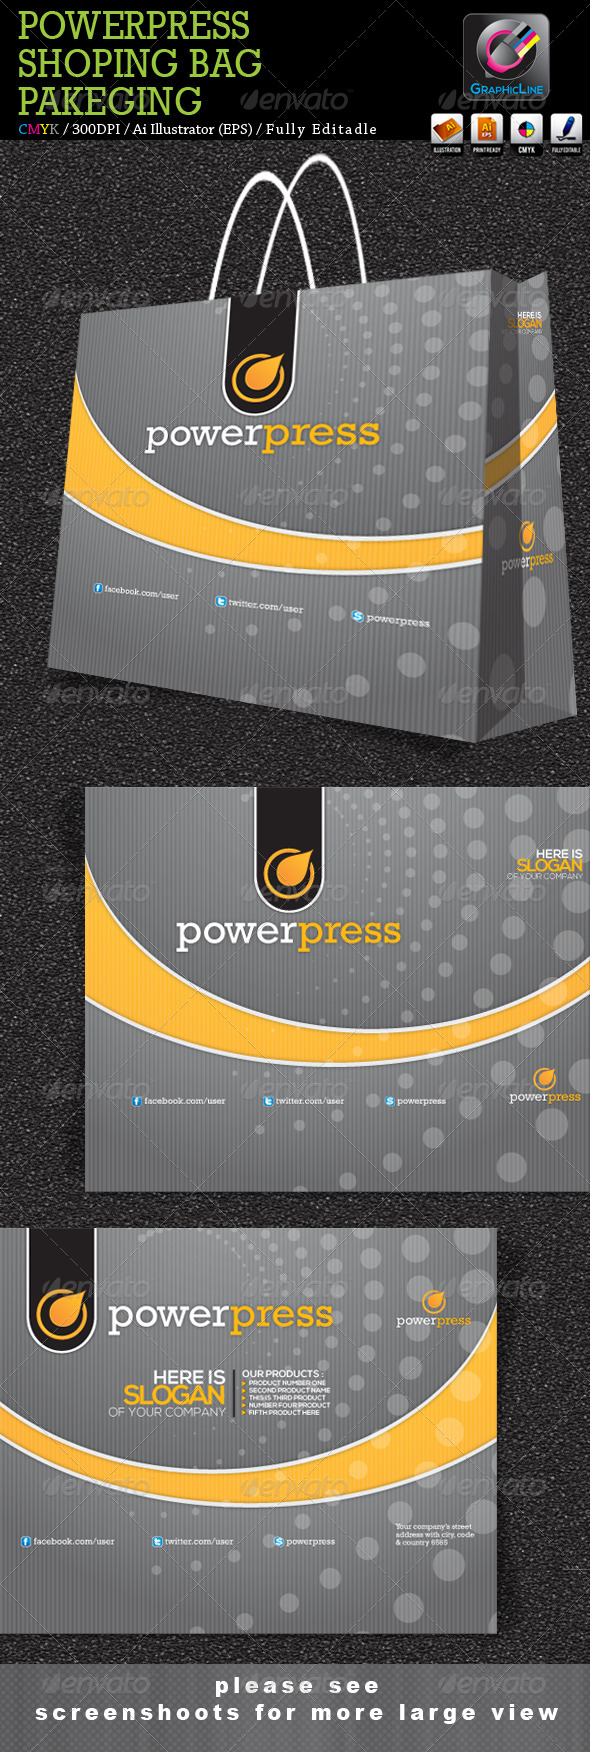 Power Press Shoping Bag Packaging - Packaging Print Templates